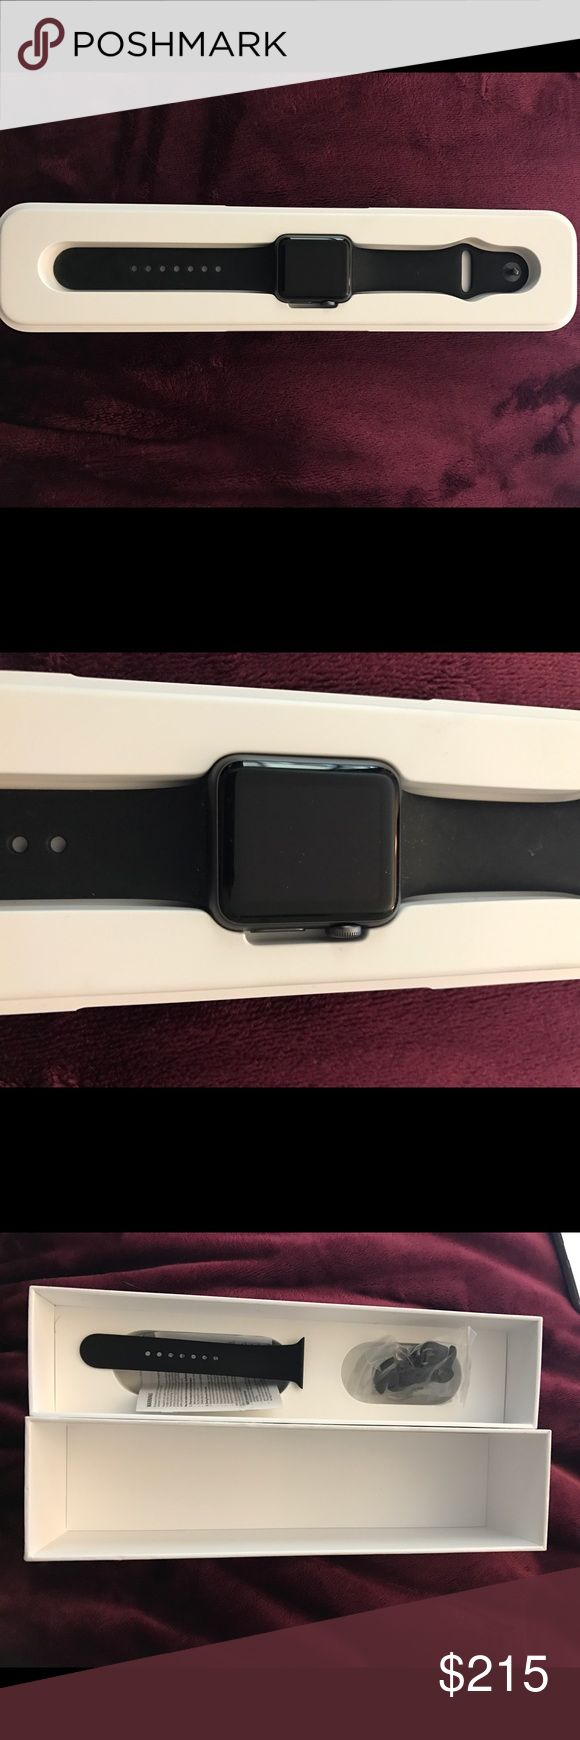 Apple Watch series 1 space grey 38mm Apple Watch series 1 space grey 38mm, very minor cosmetic damage, comes with charger and original case with extra band, only wore for 6 months, in great condition apple Accessories Watches